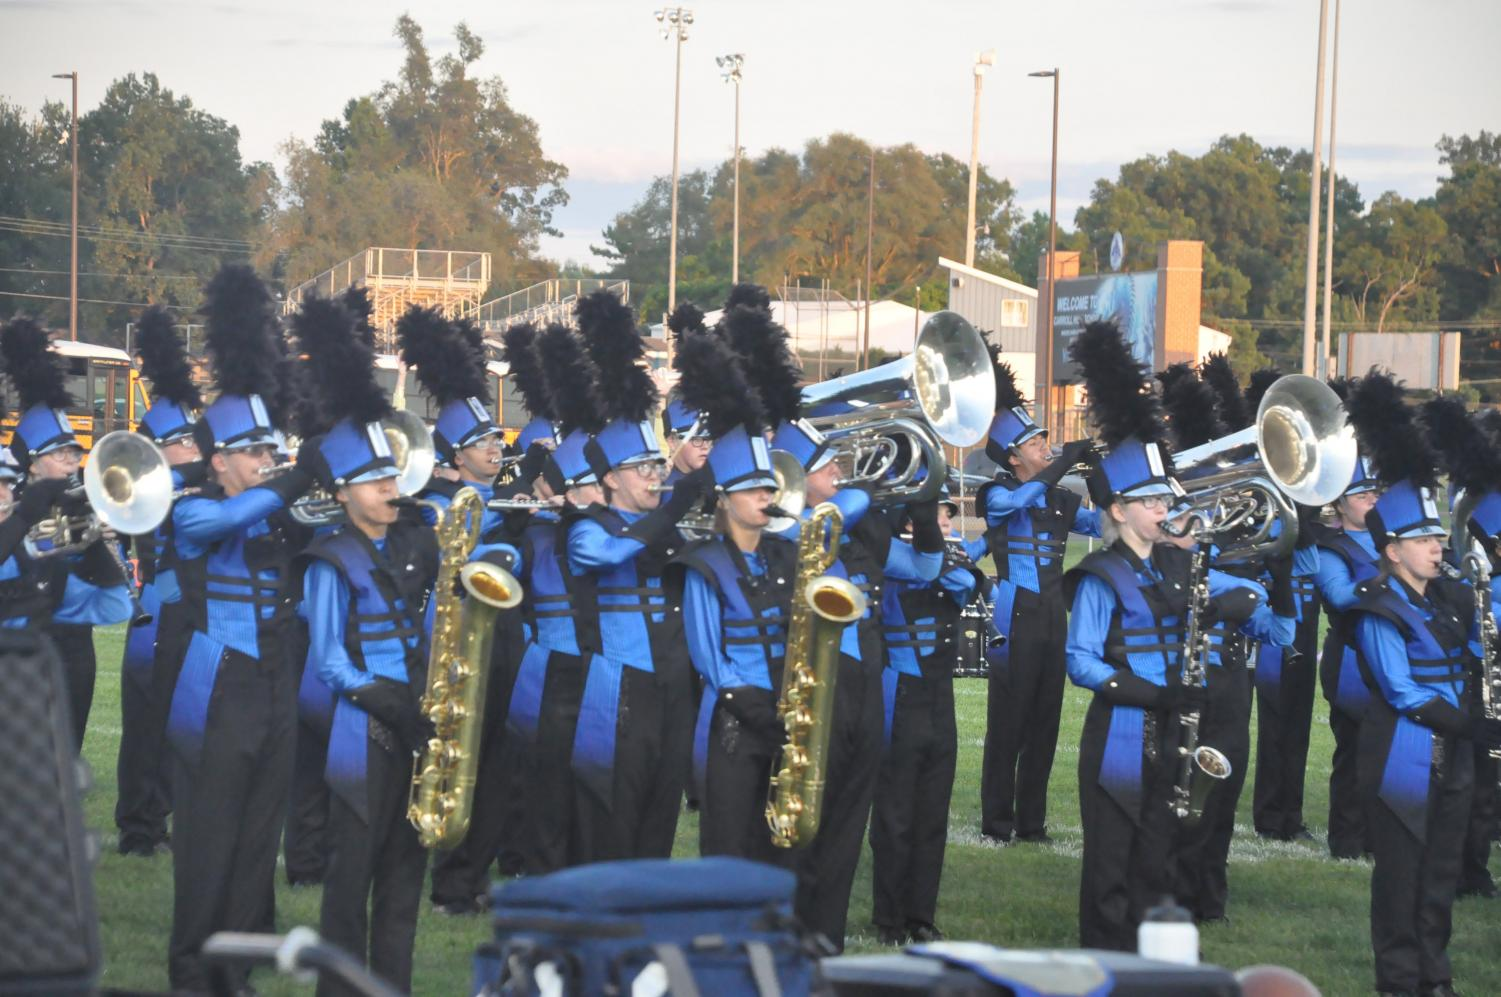 Charger Pride plays